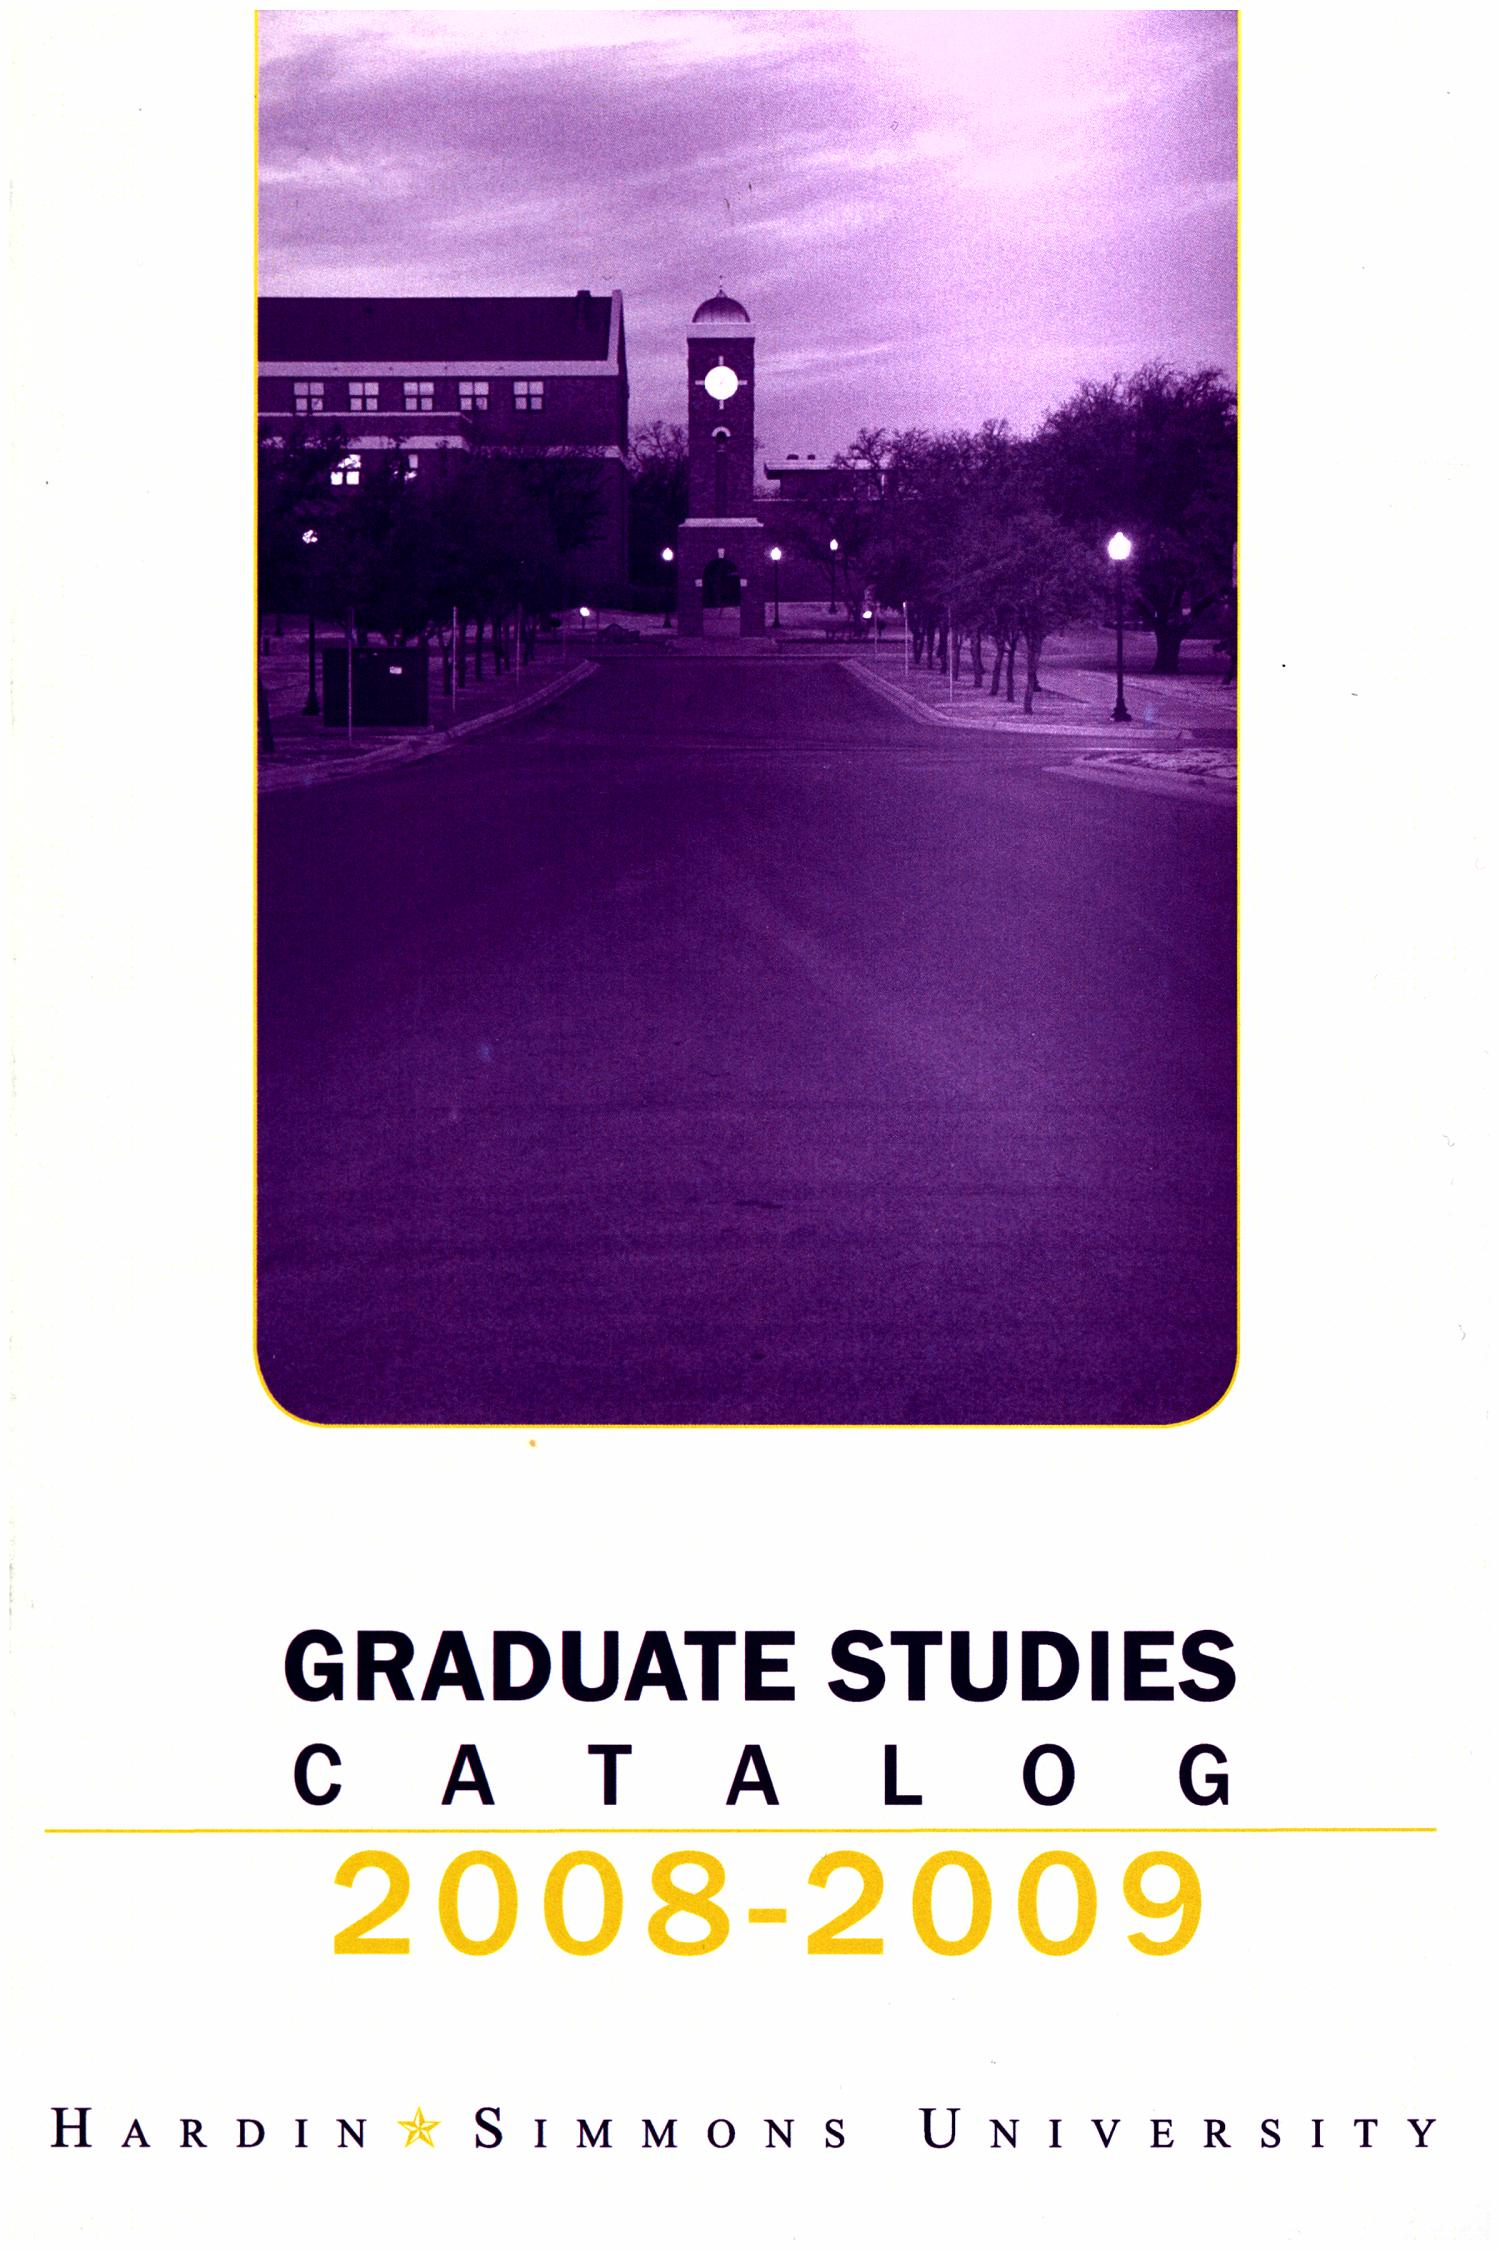 Catalog of Hardin-Simmons University, 2008-2009 Graduate Bulletin                                                                                                      Front Cover